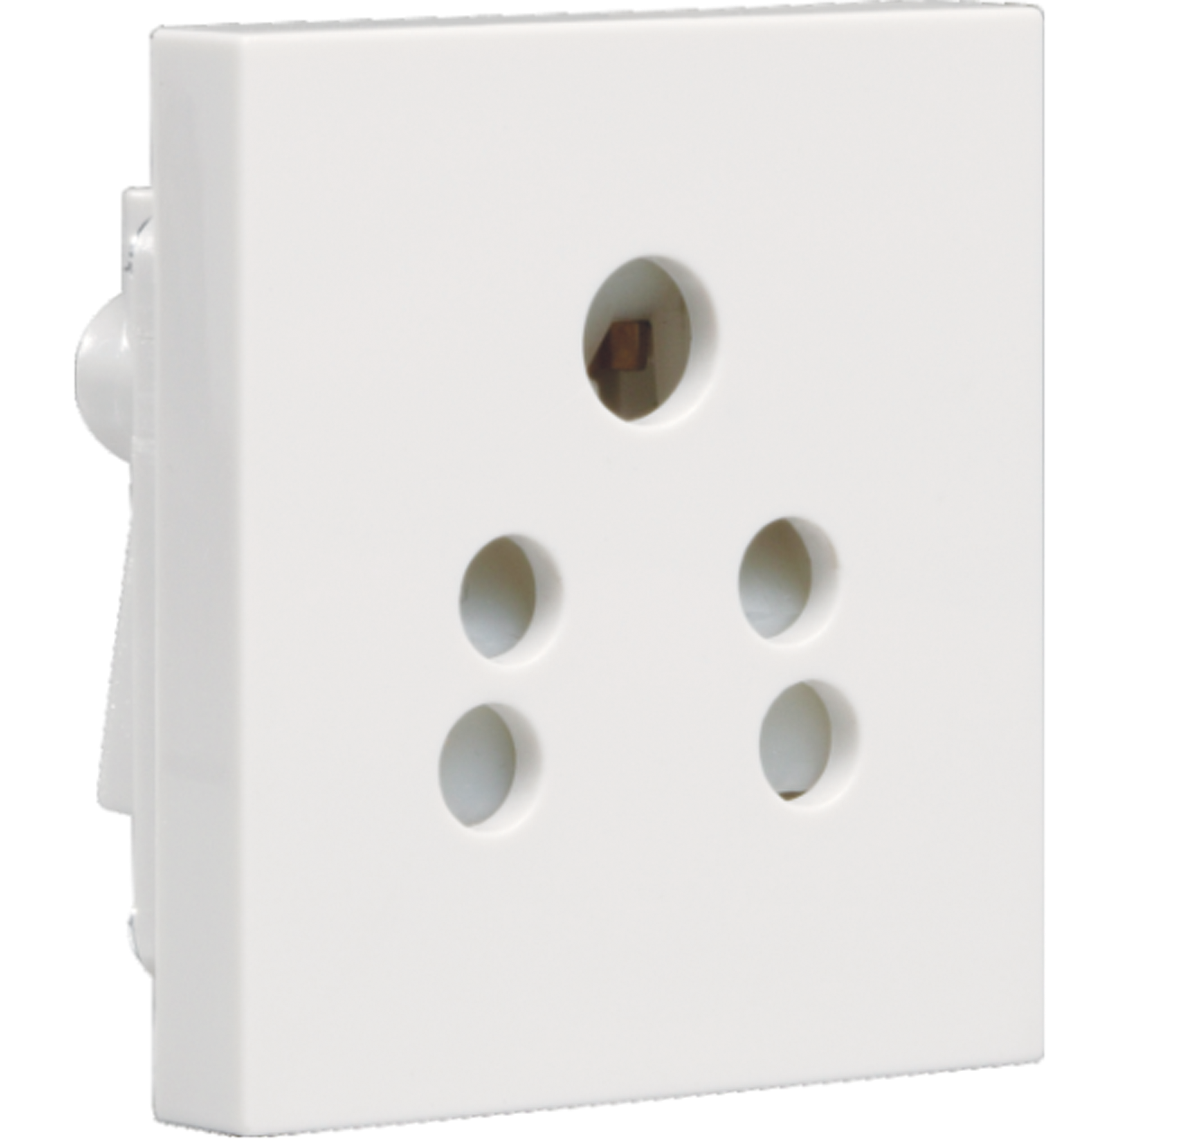 Crabtree - 6 A 5 pin shuttered socket